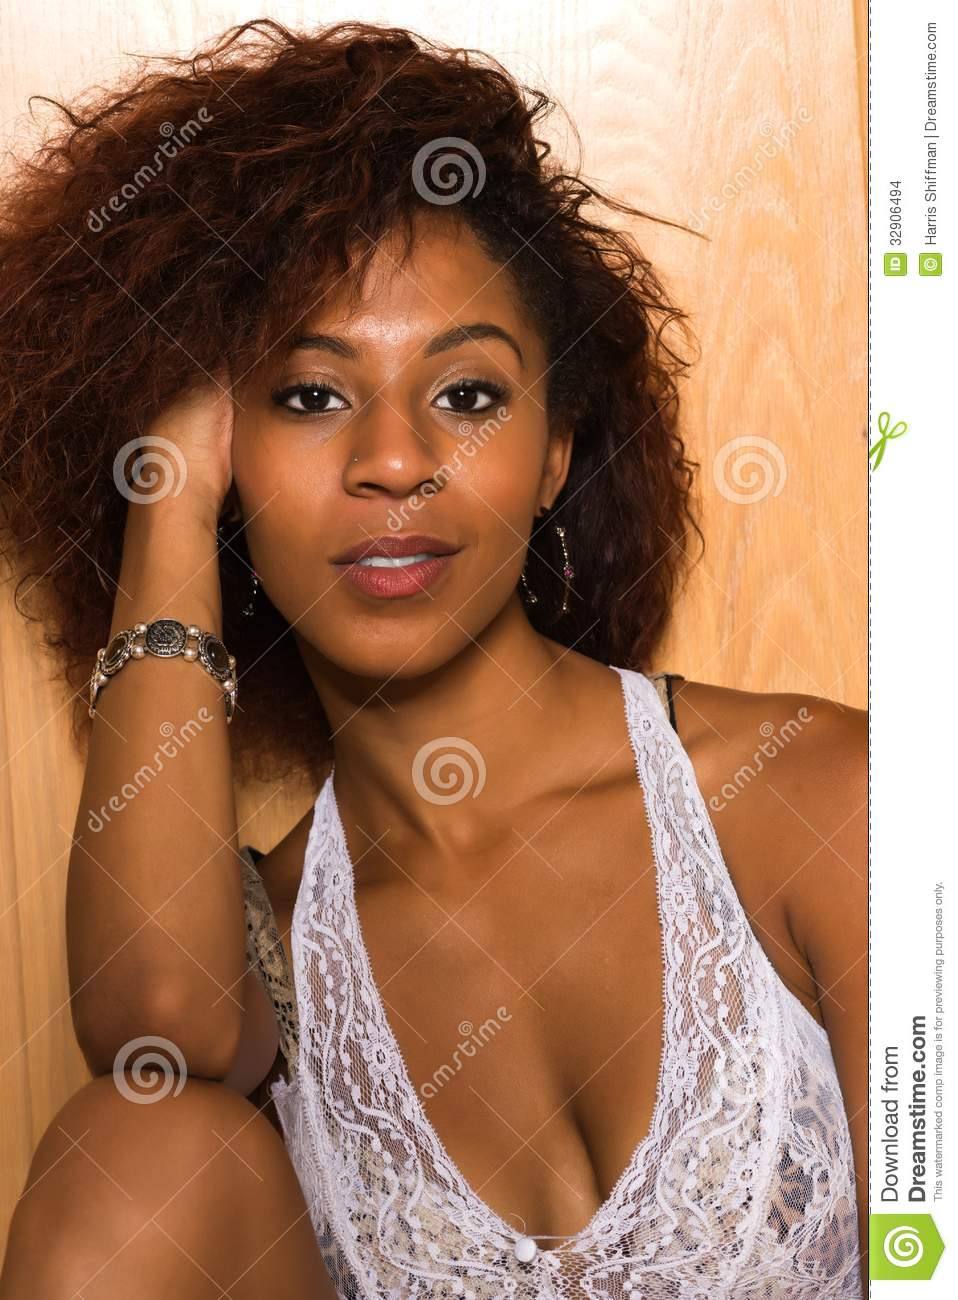 White Lace Stock Photo Image Of Slender Woman American